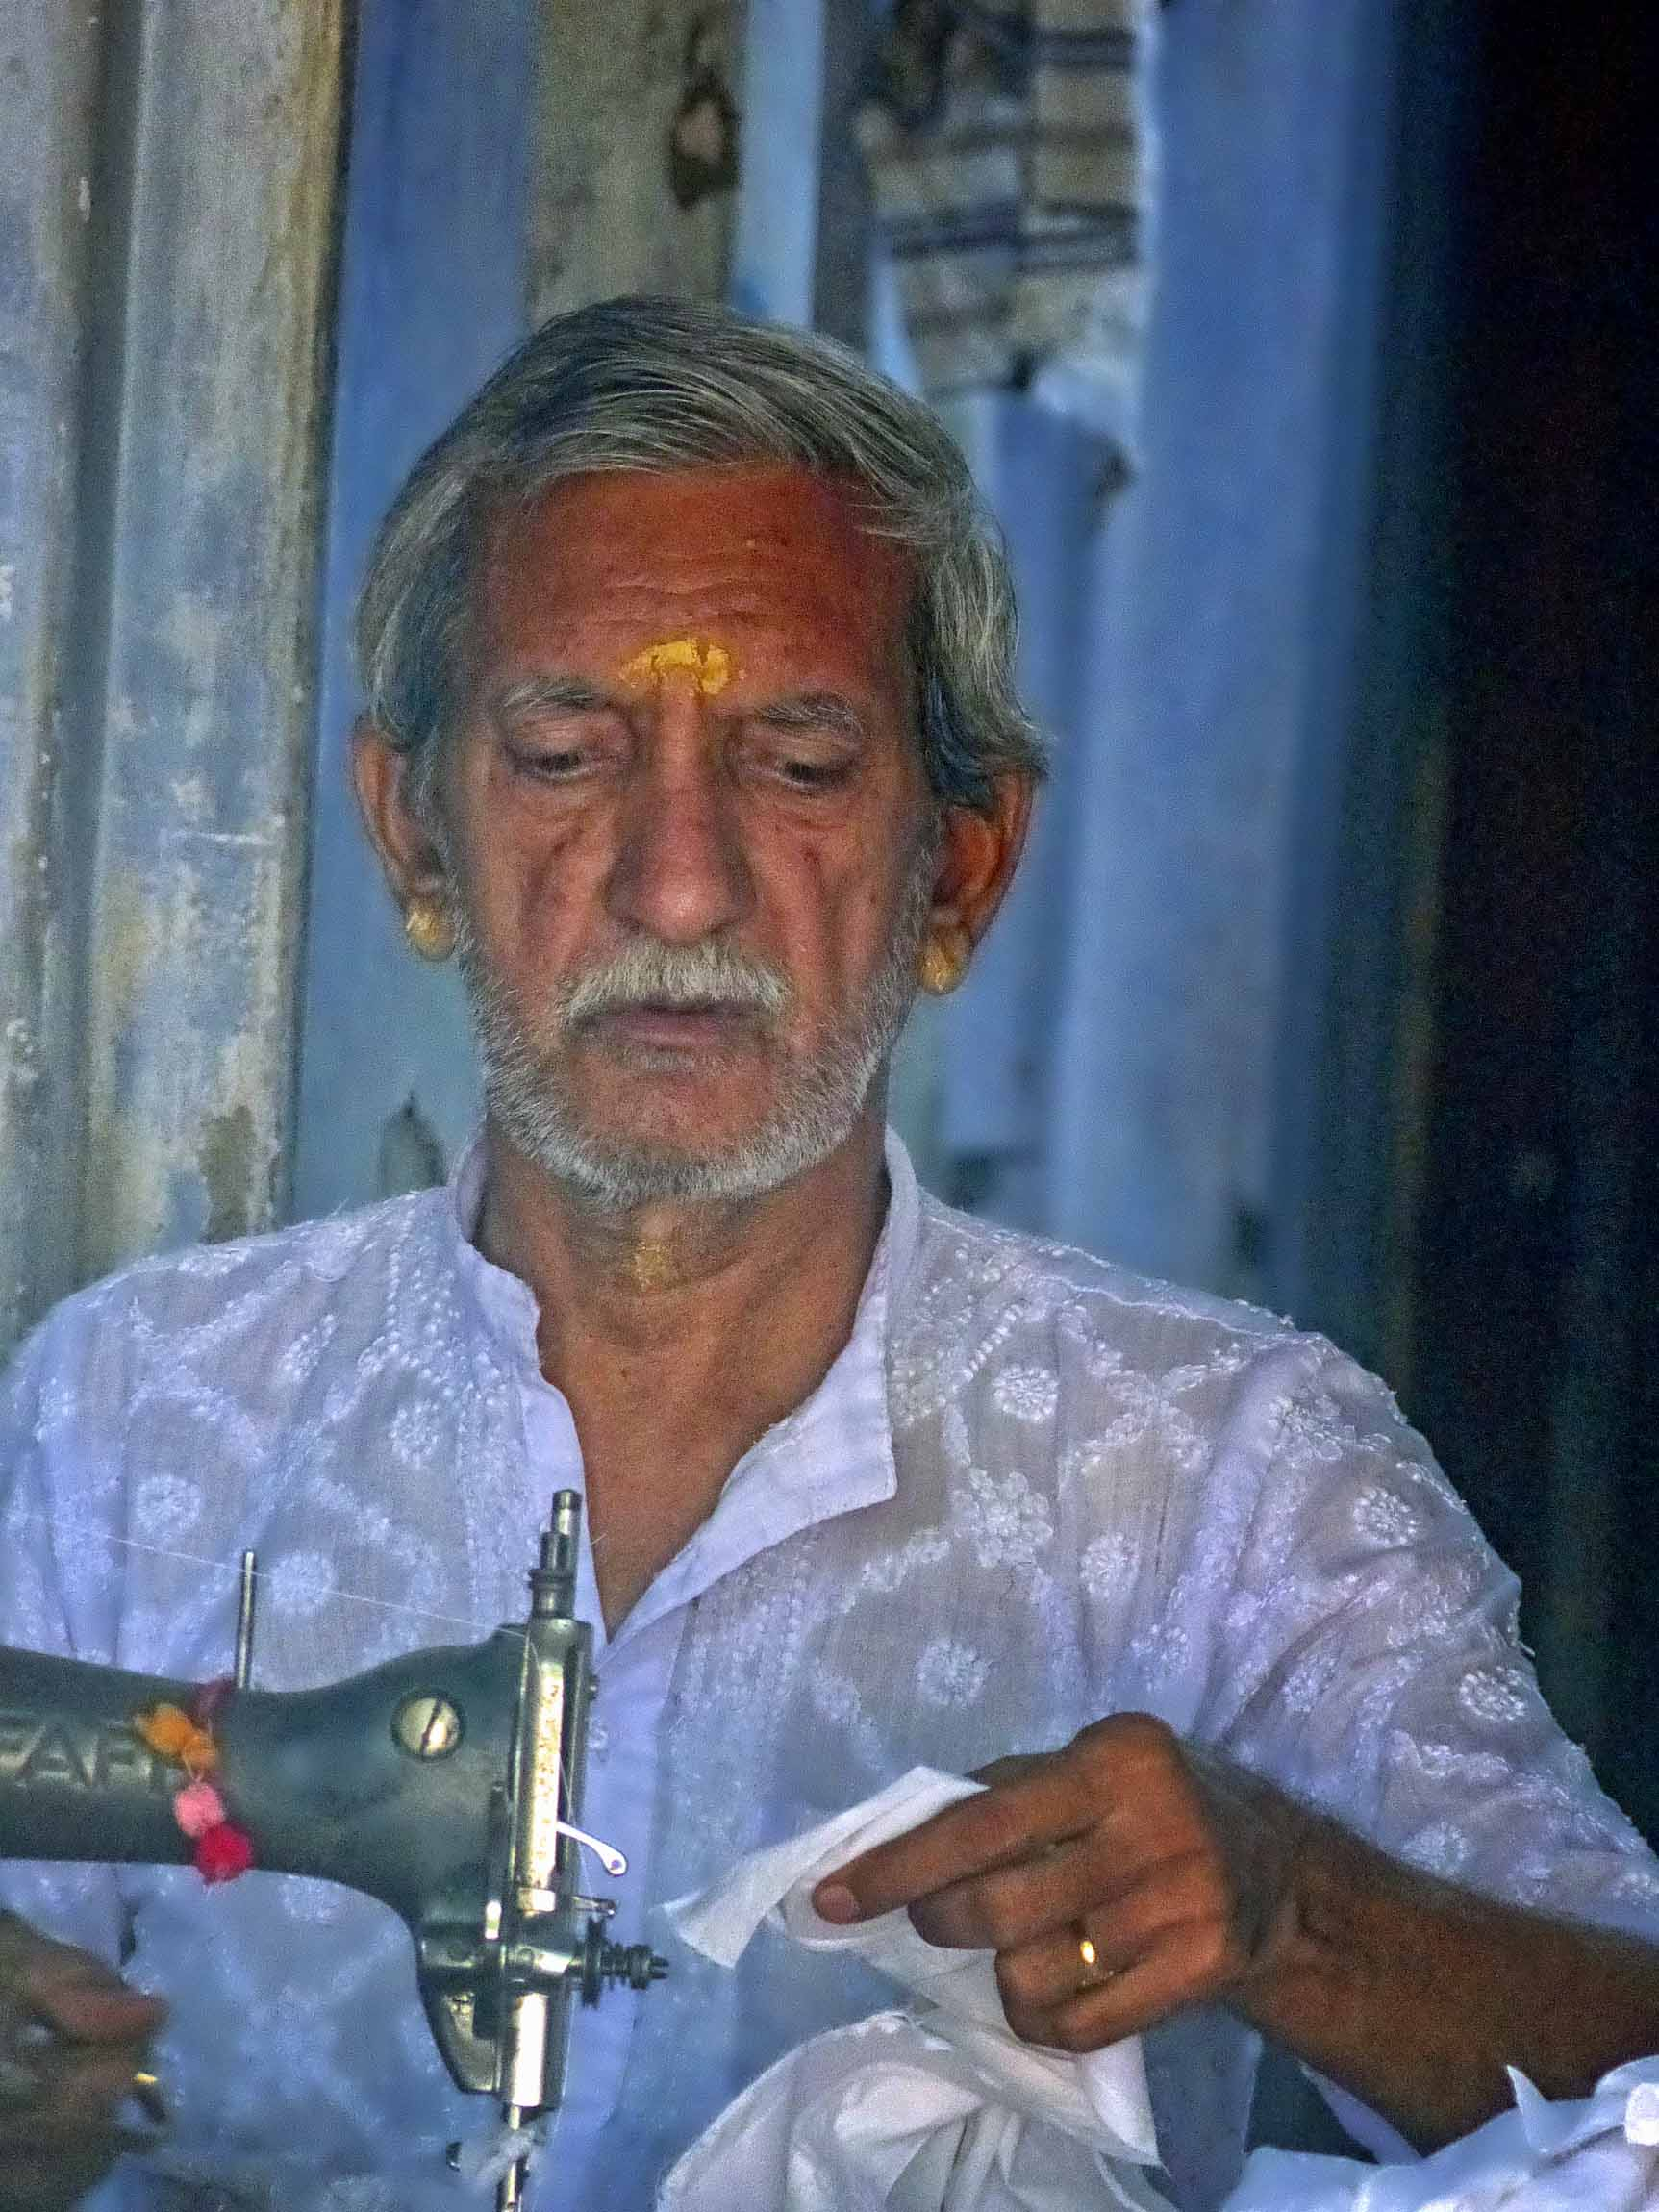 Man at an old-fashioned sewing machine